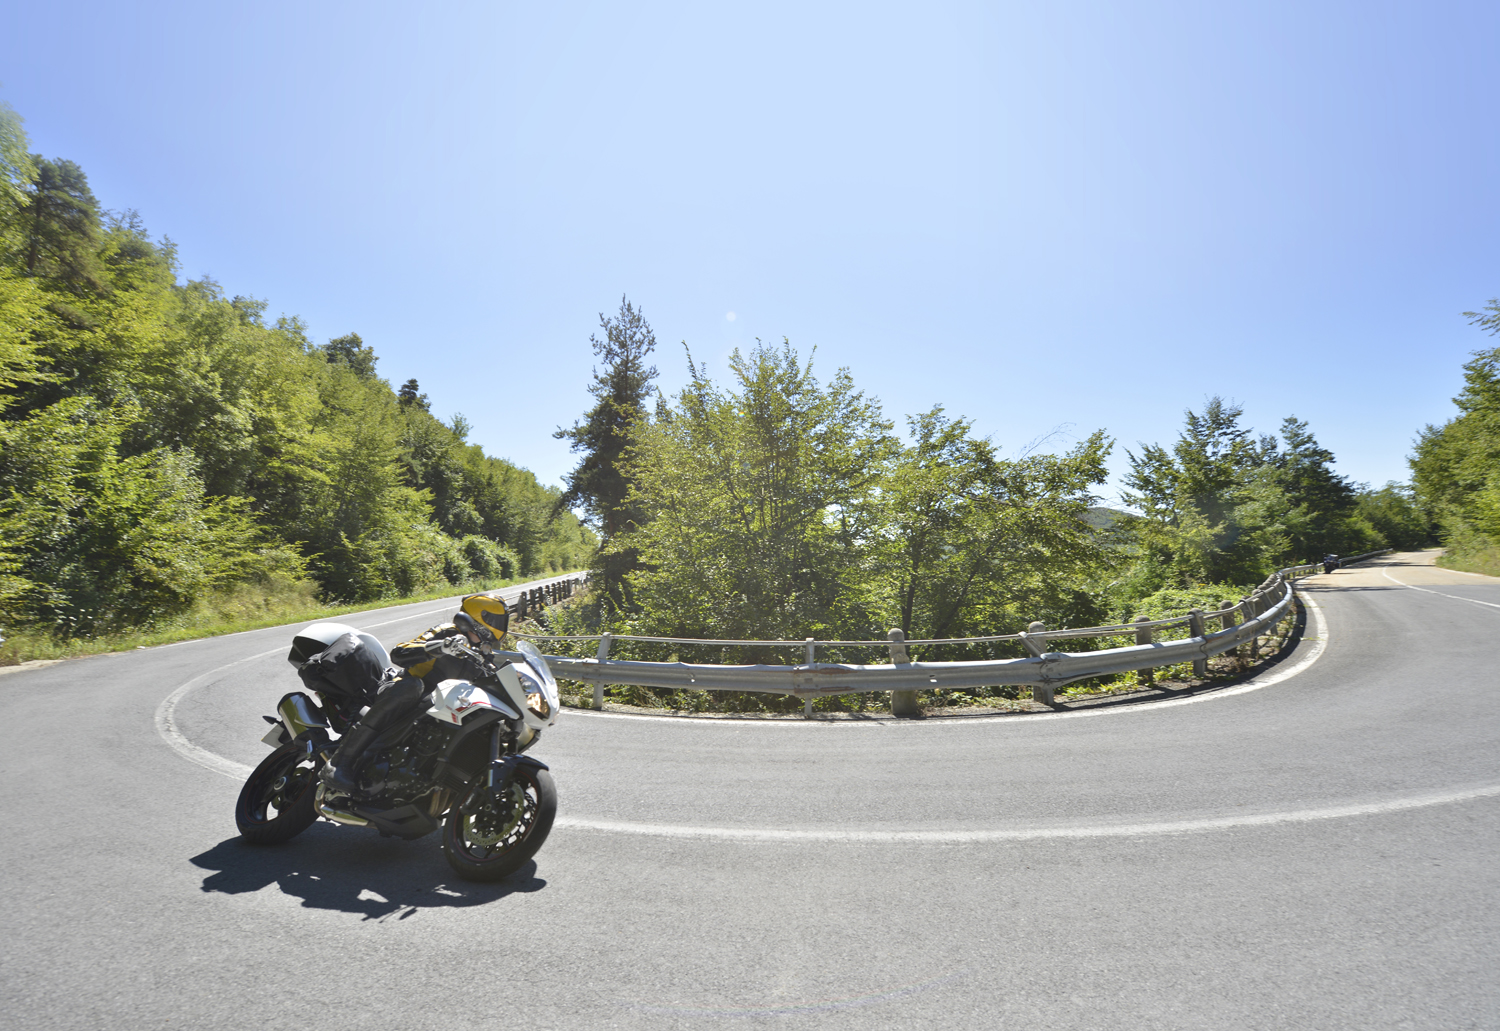 Miles of empty roads baked by the fierce sun of Calabria